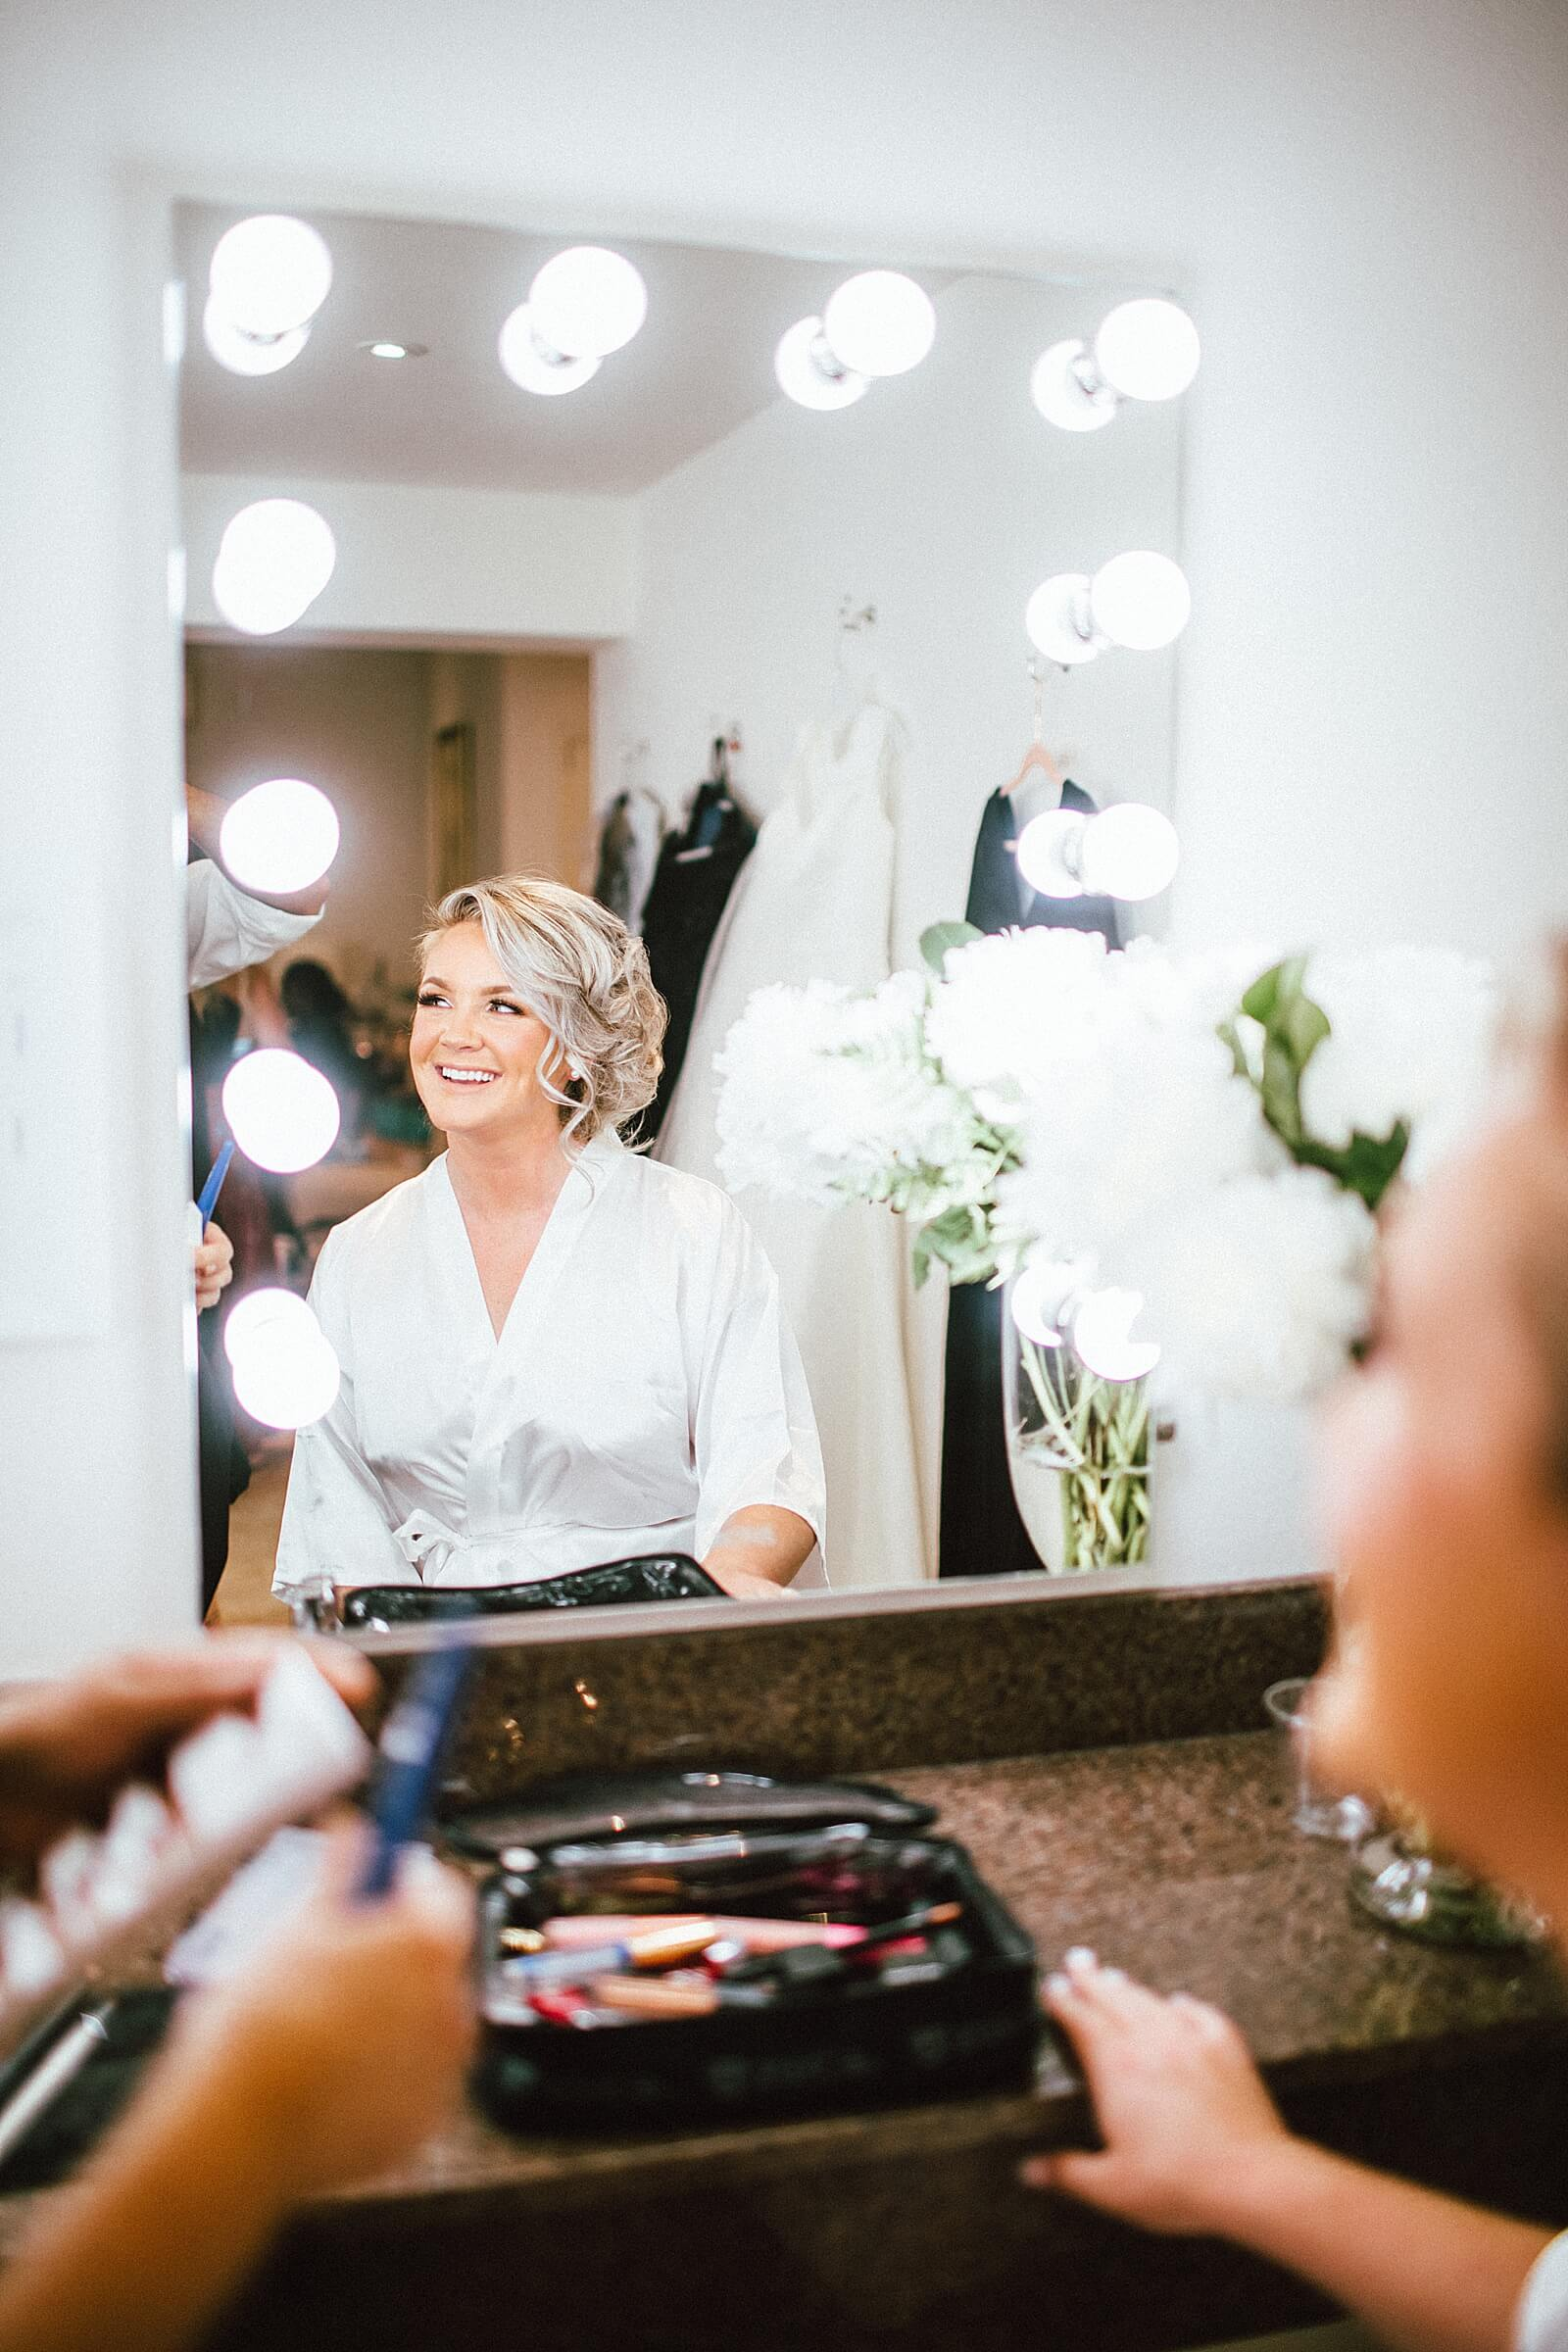 Bride looks in mirror and admires her bridal makeup in bridal suite at The Annex wedding venue near College Station